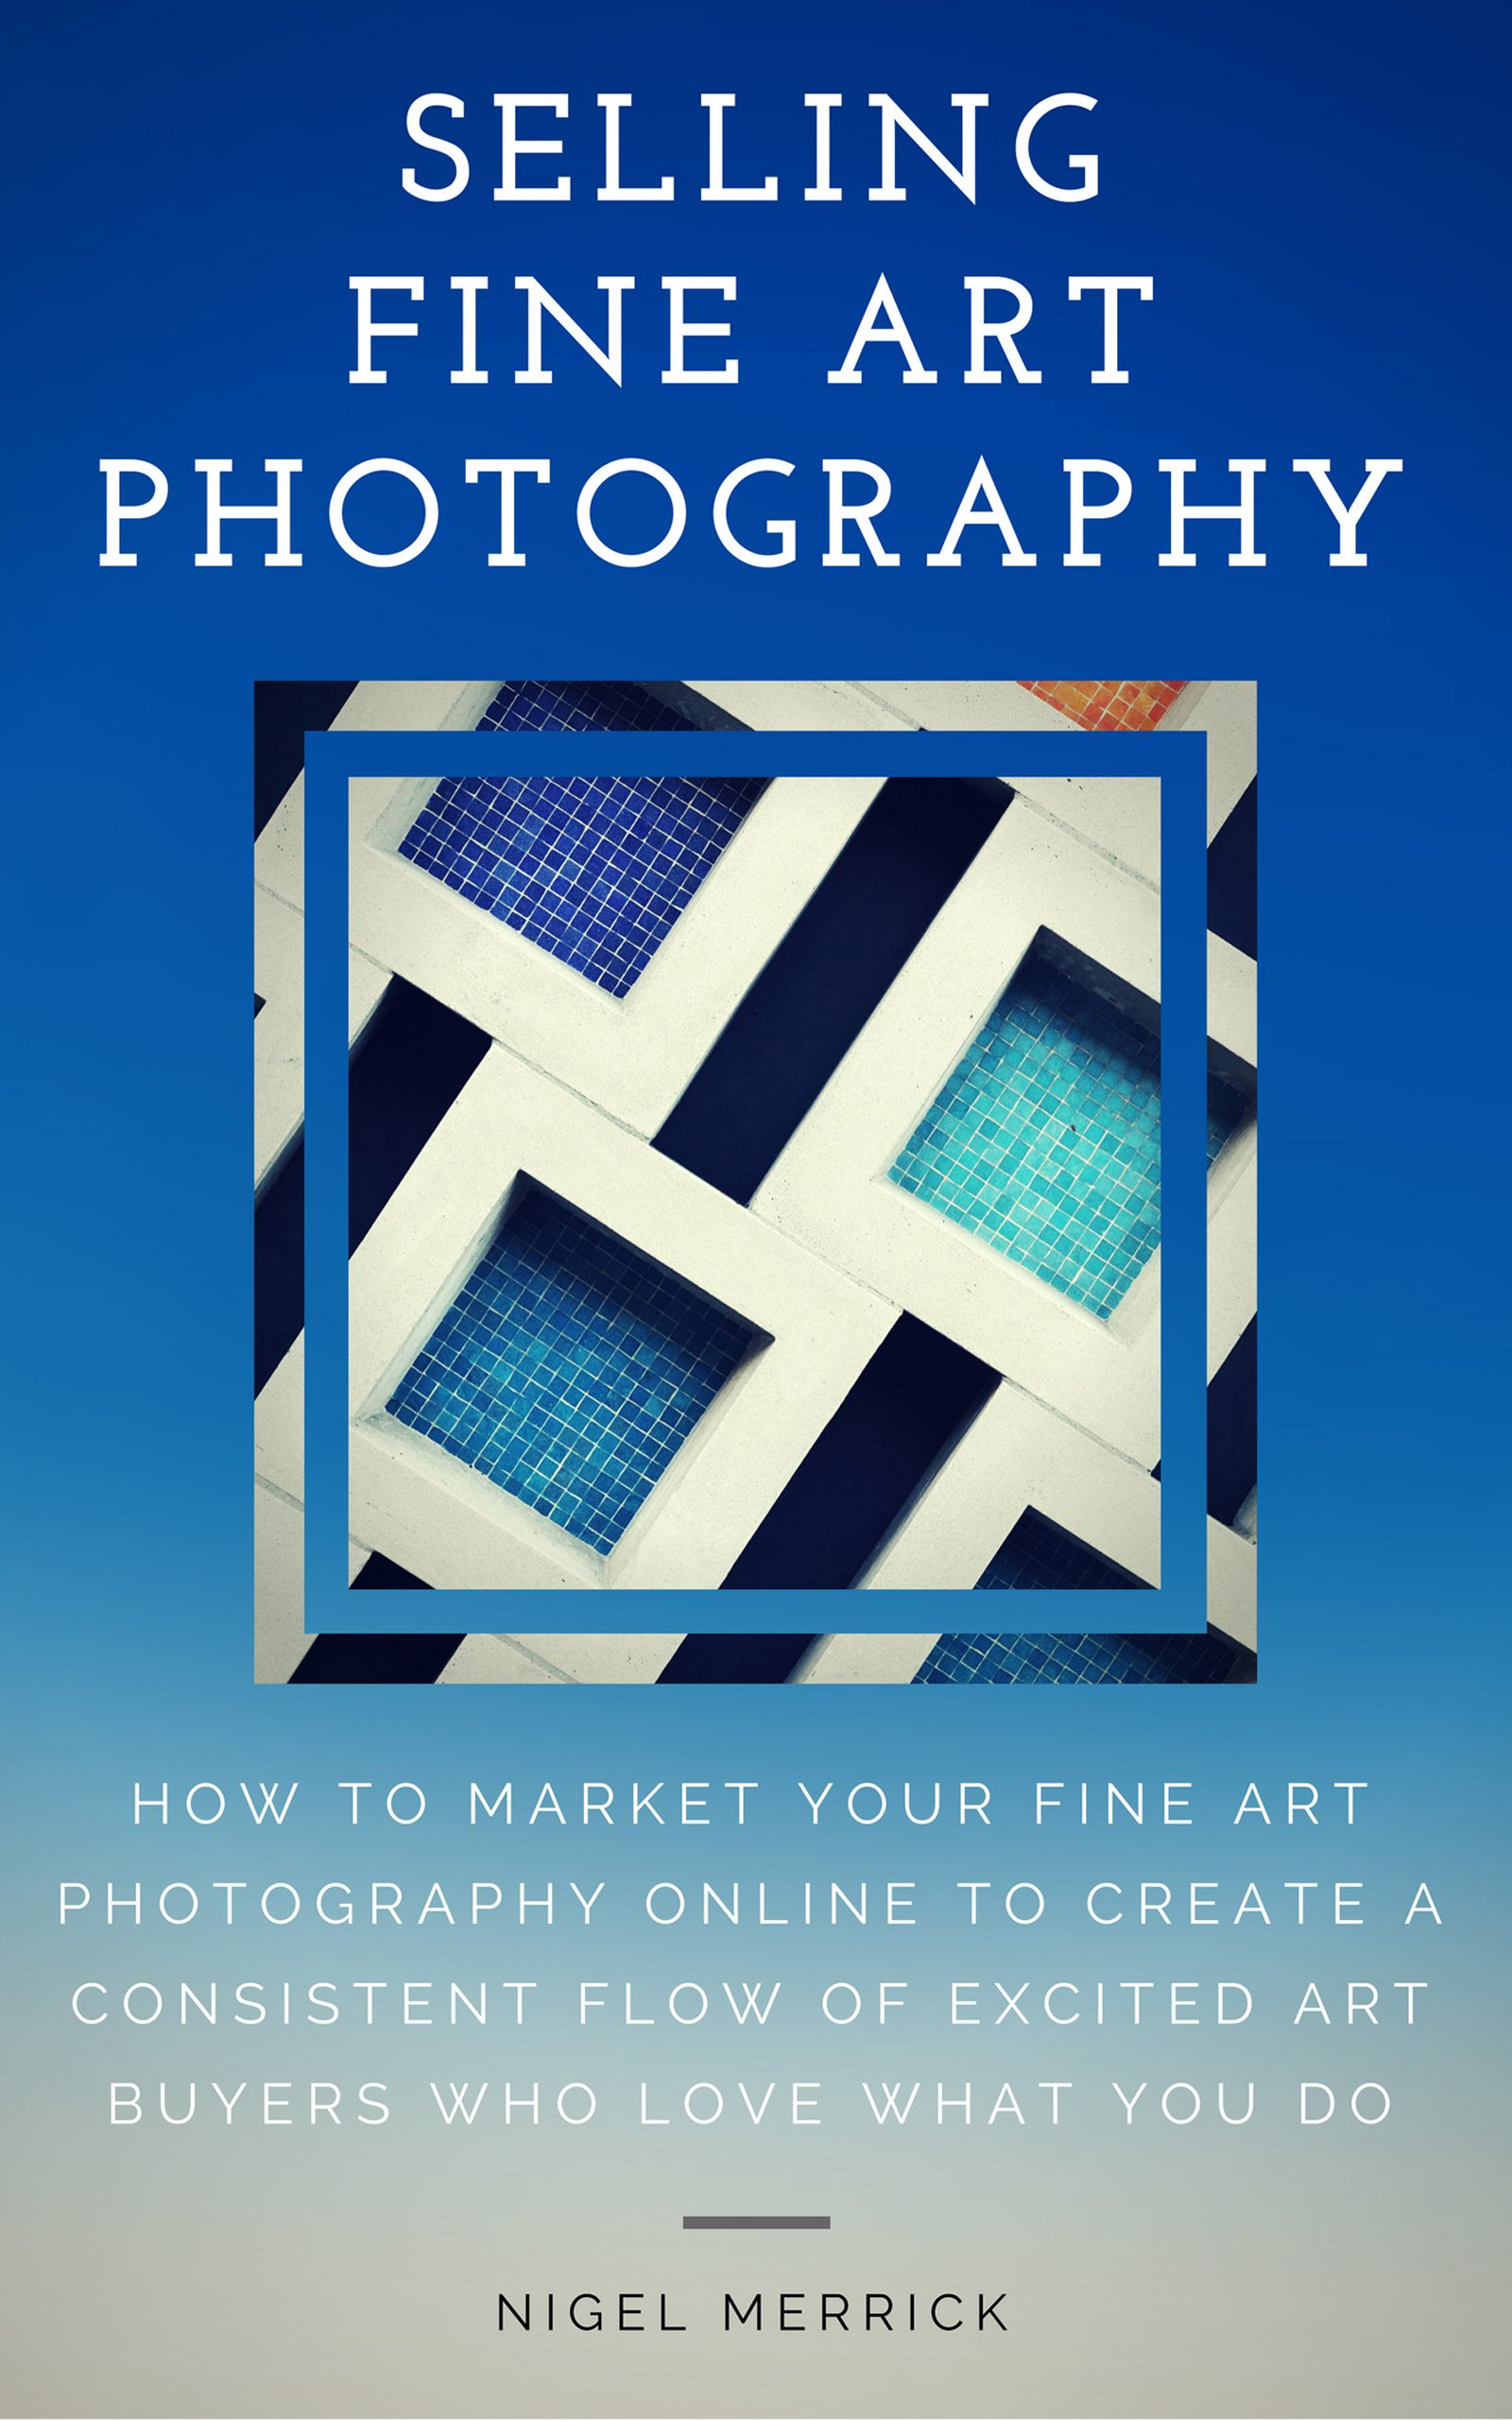 Selling Fine Art Photography: How To Market Your Fine Art Photography Online To Create A Consistent Flow Of Excited Art Buyers Who Love What You Do por Nigel Merrick